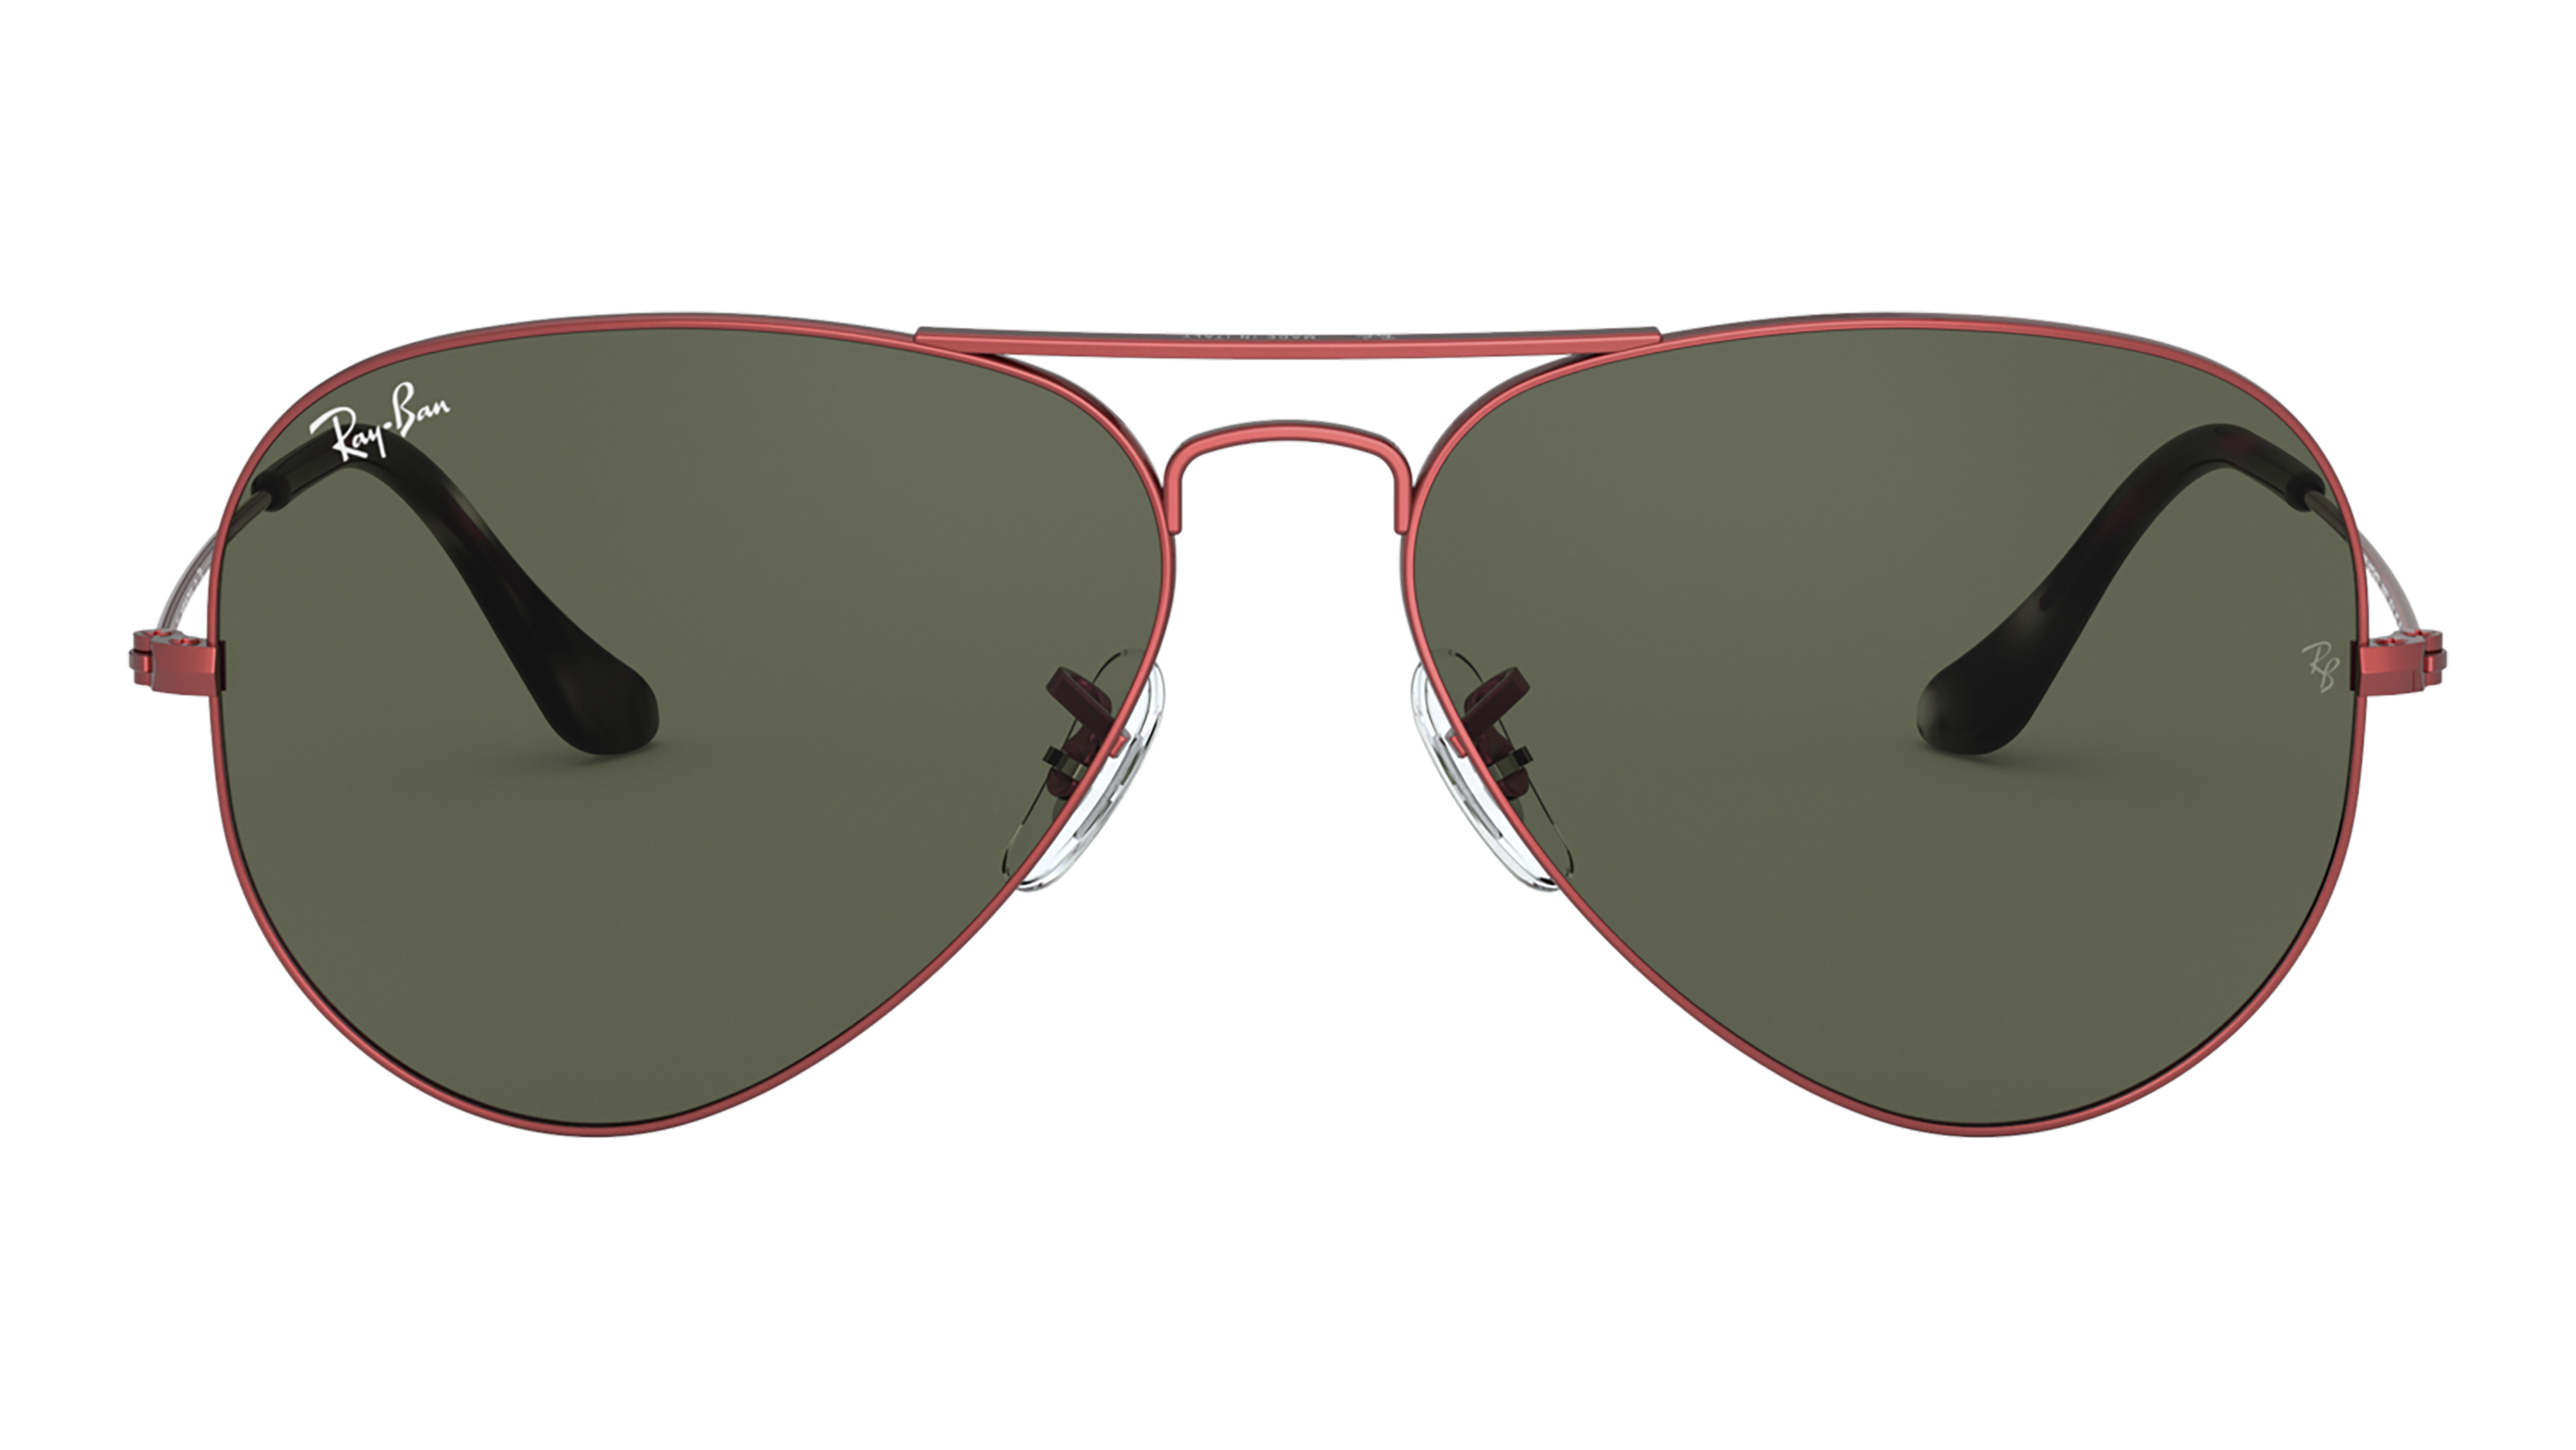 Front Ray-Ban Ray-Ban 0RB3025 918831 62/14 Rood/Groen